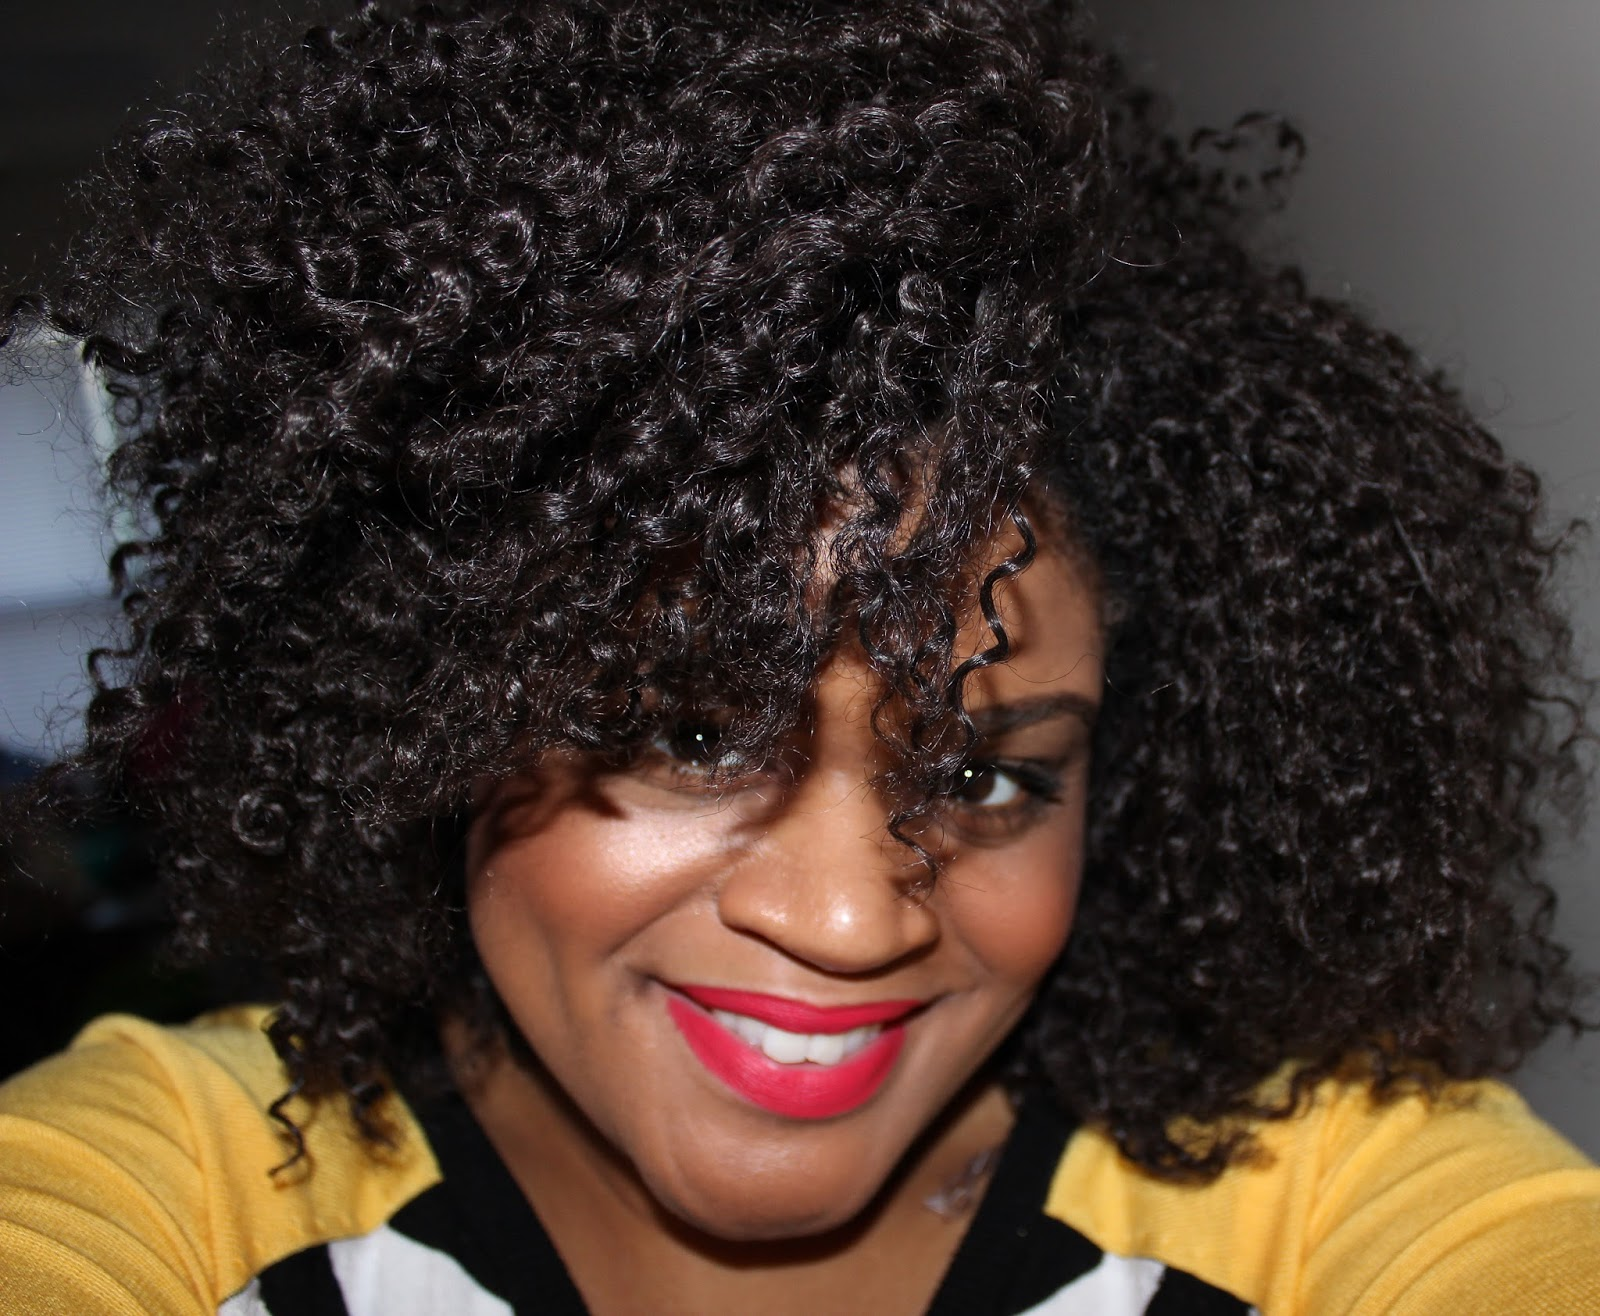 Crochet Hair At Night : Hair for Crochet Braids. Is it possible to use pretwisted crochet ...